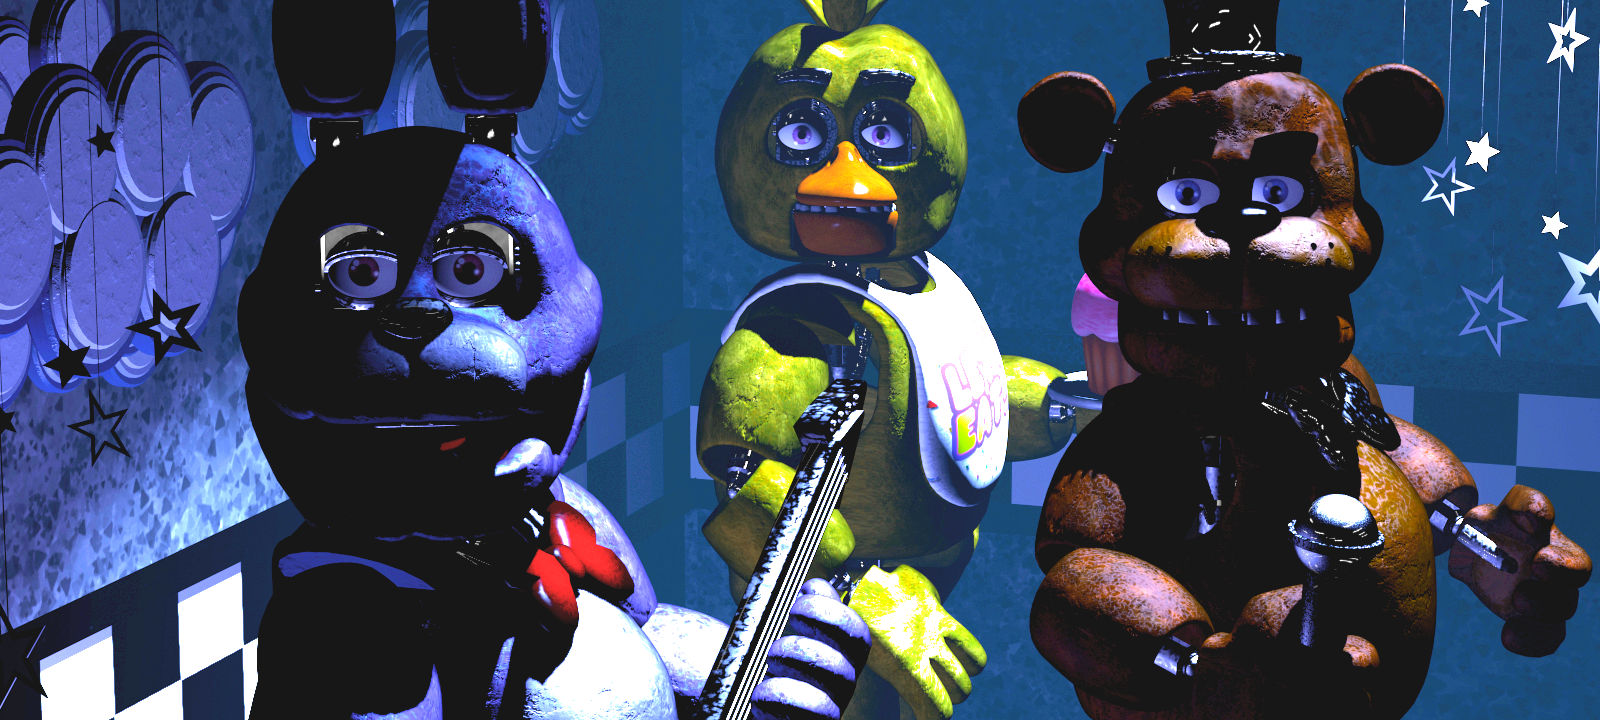 Reading Between the Lines: What Passive Storytelling Teaches Us – Part 3, Five Nights at Freddy's